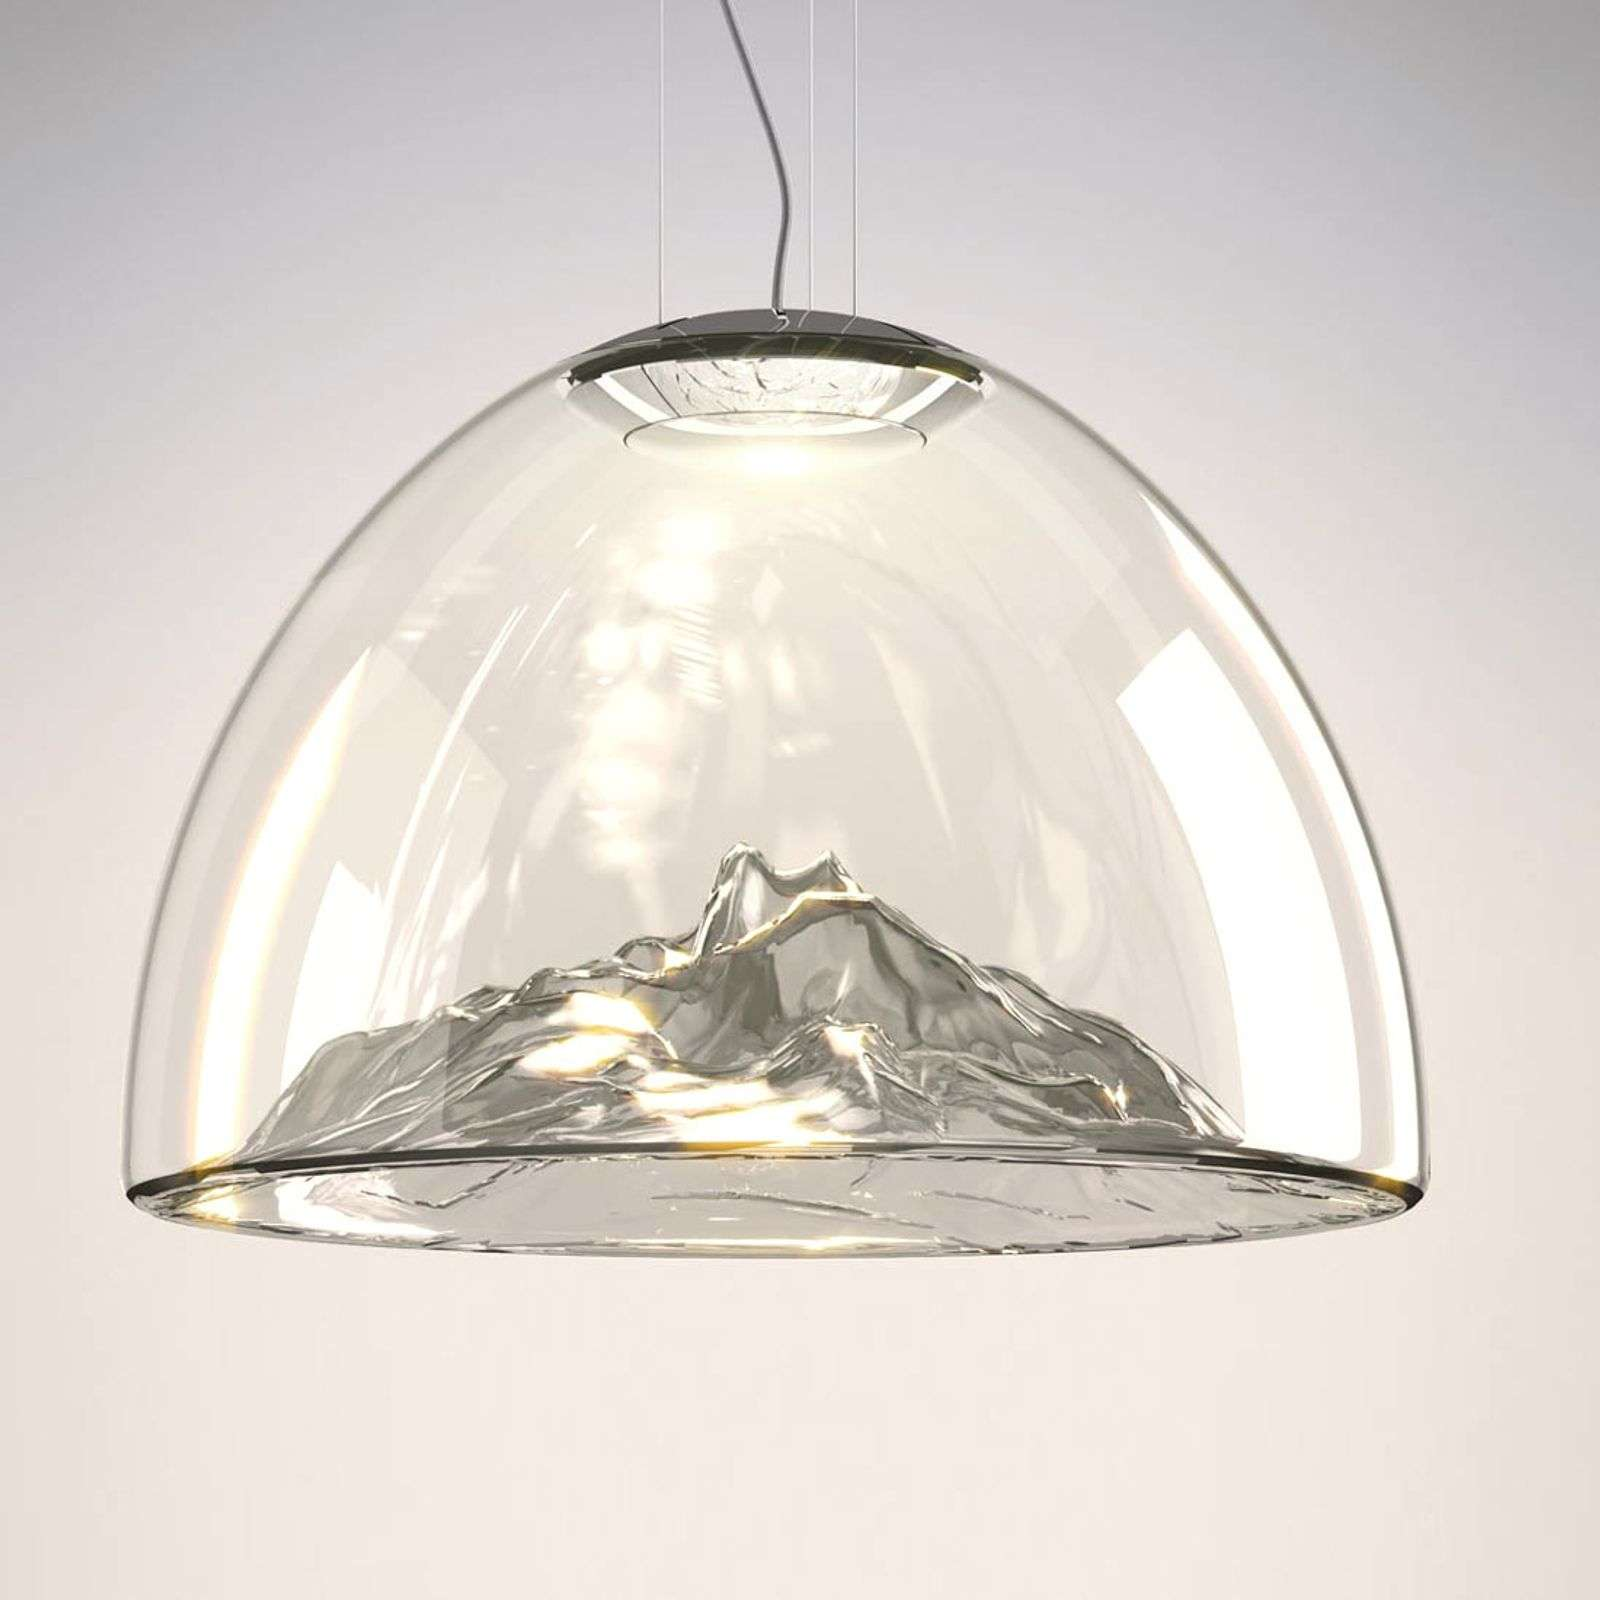 Axolight Mountain View - LED hanglamp grijs-chroom